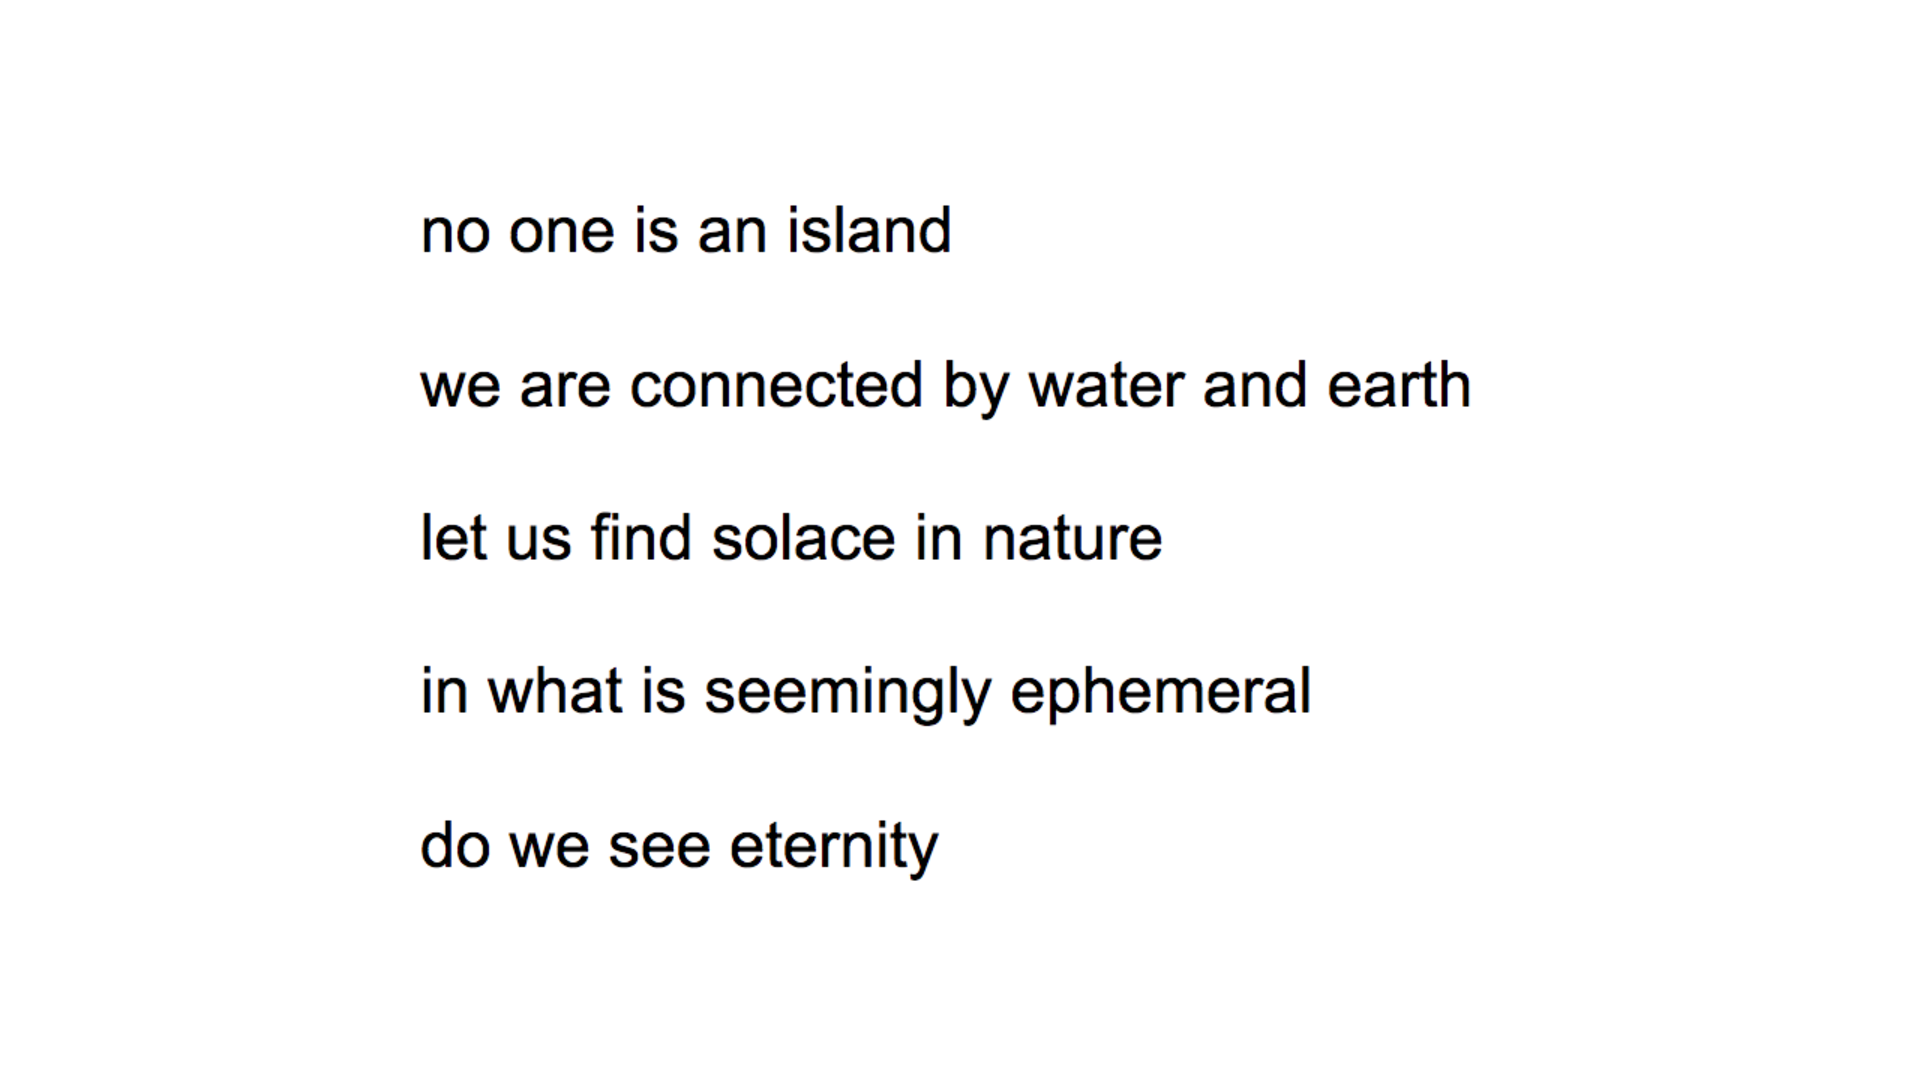 no one is an island